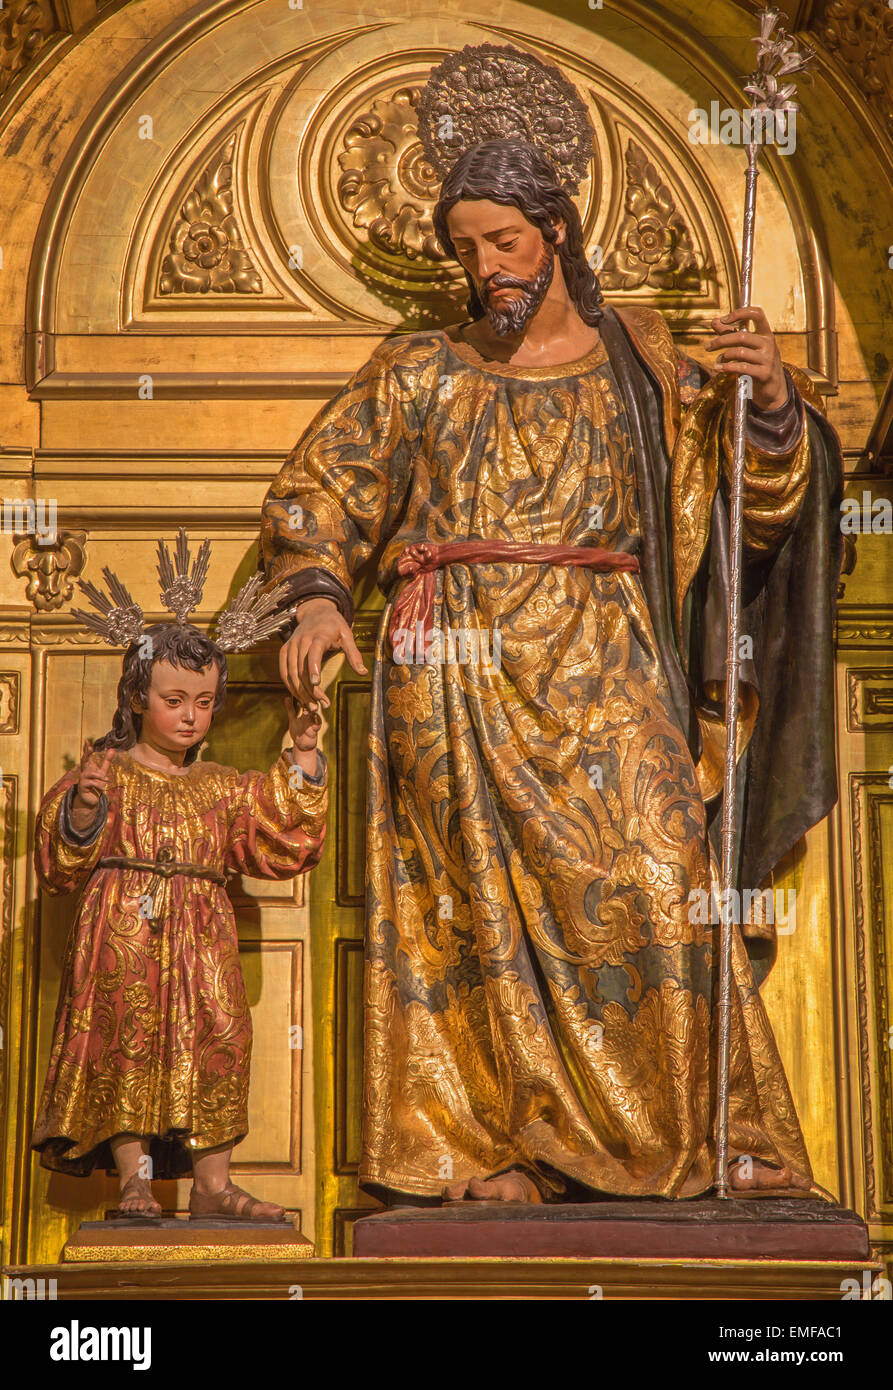 Seville - The polychrome carved statue of st. Joseph in the church Iglesia de Santa Maria Magdalena from 17. cent. - Stock Image